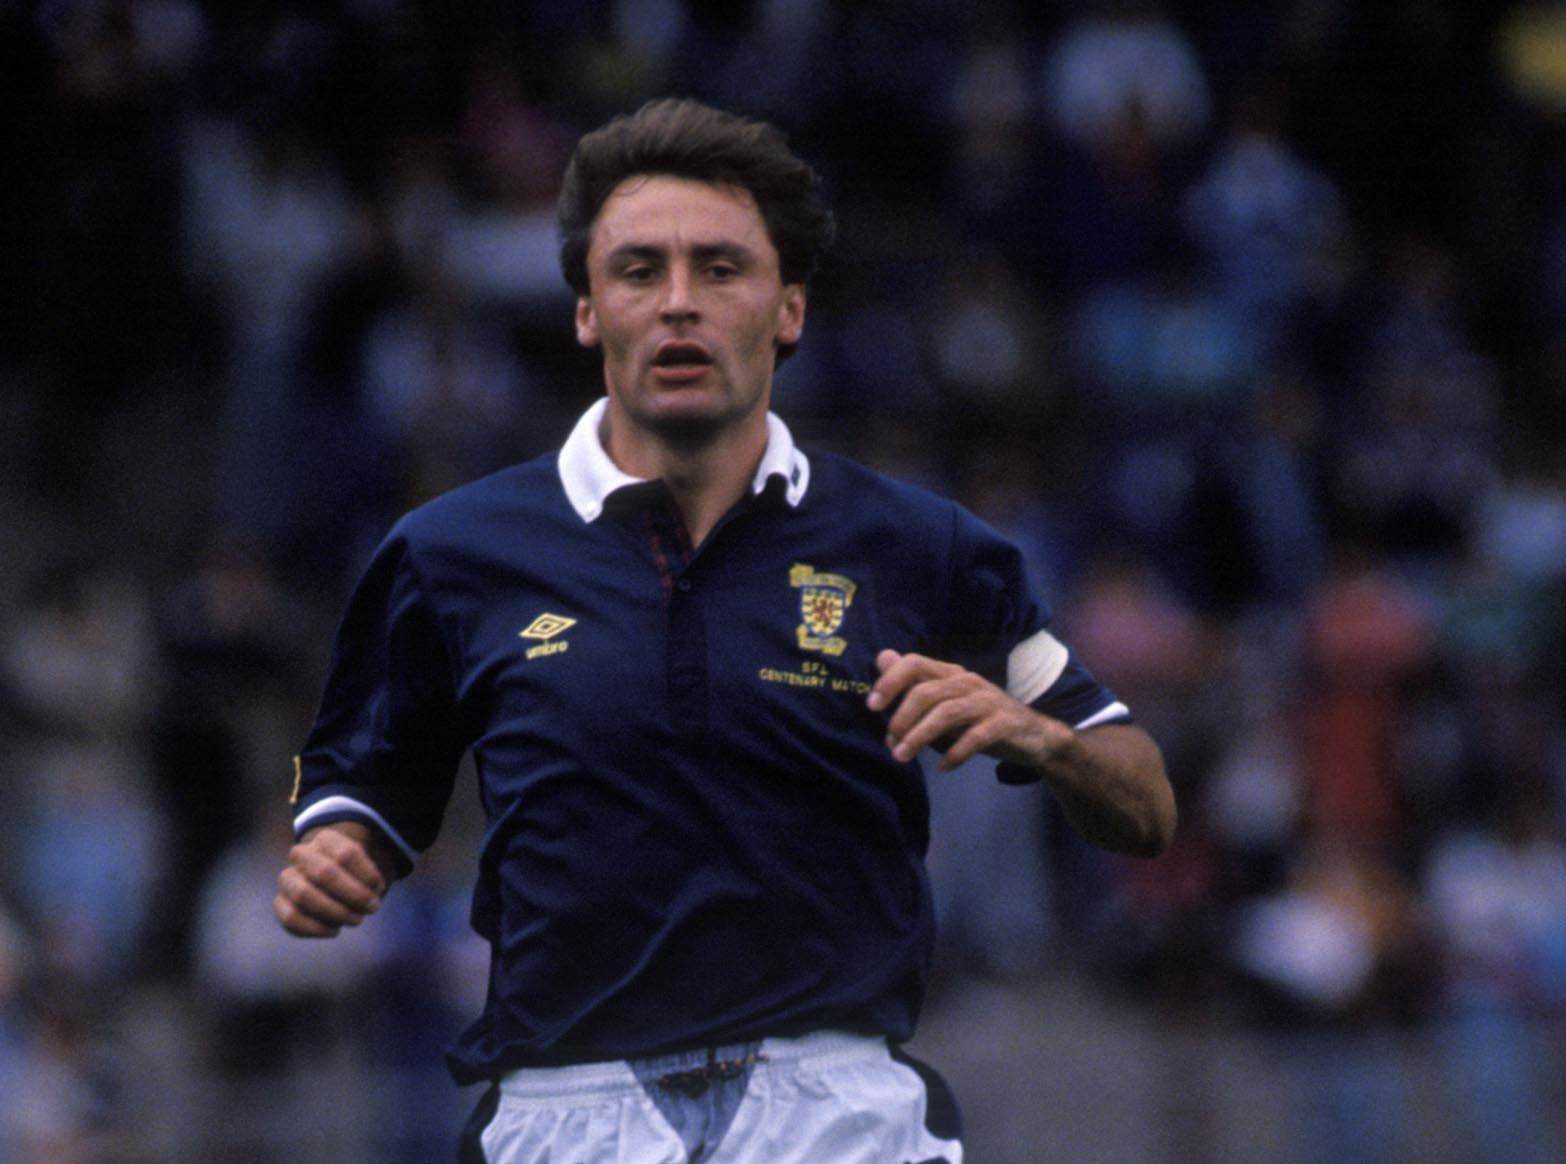 Maurice Malpas in action for Scotland.